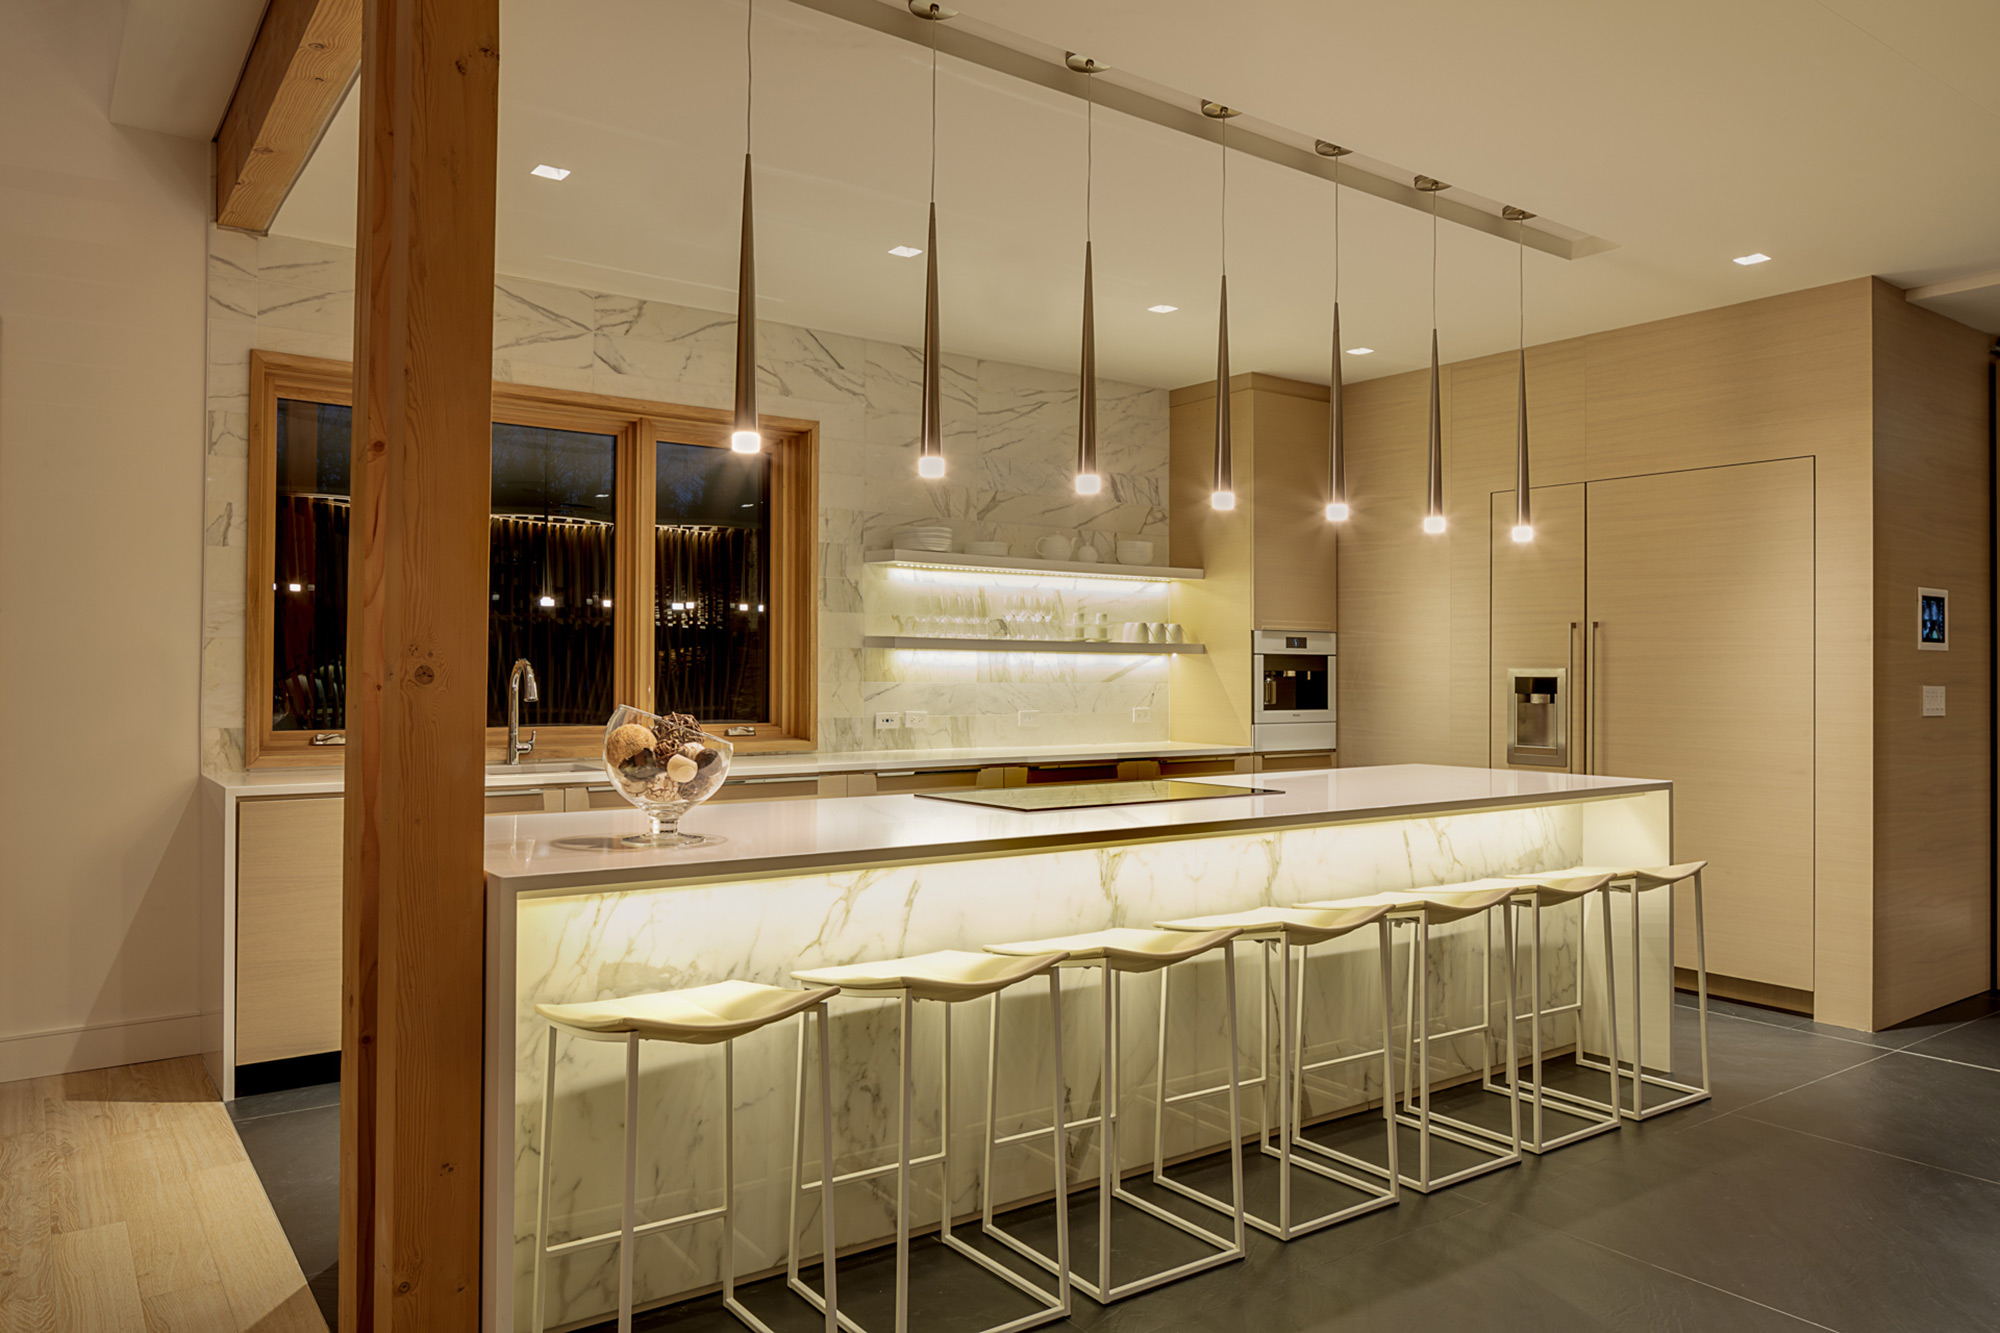 interior-design-welcome-centre-kitchen-island.jpg